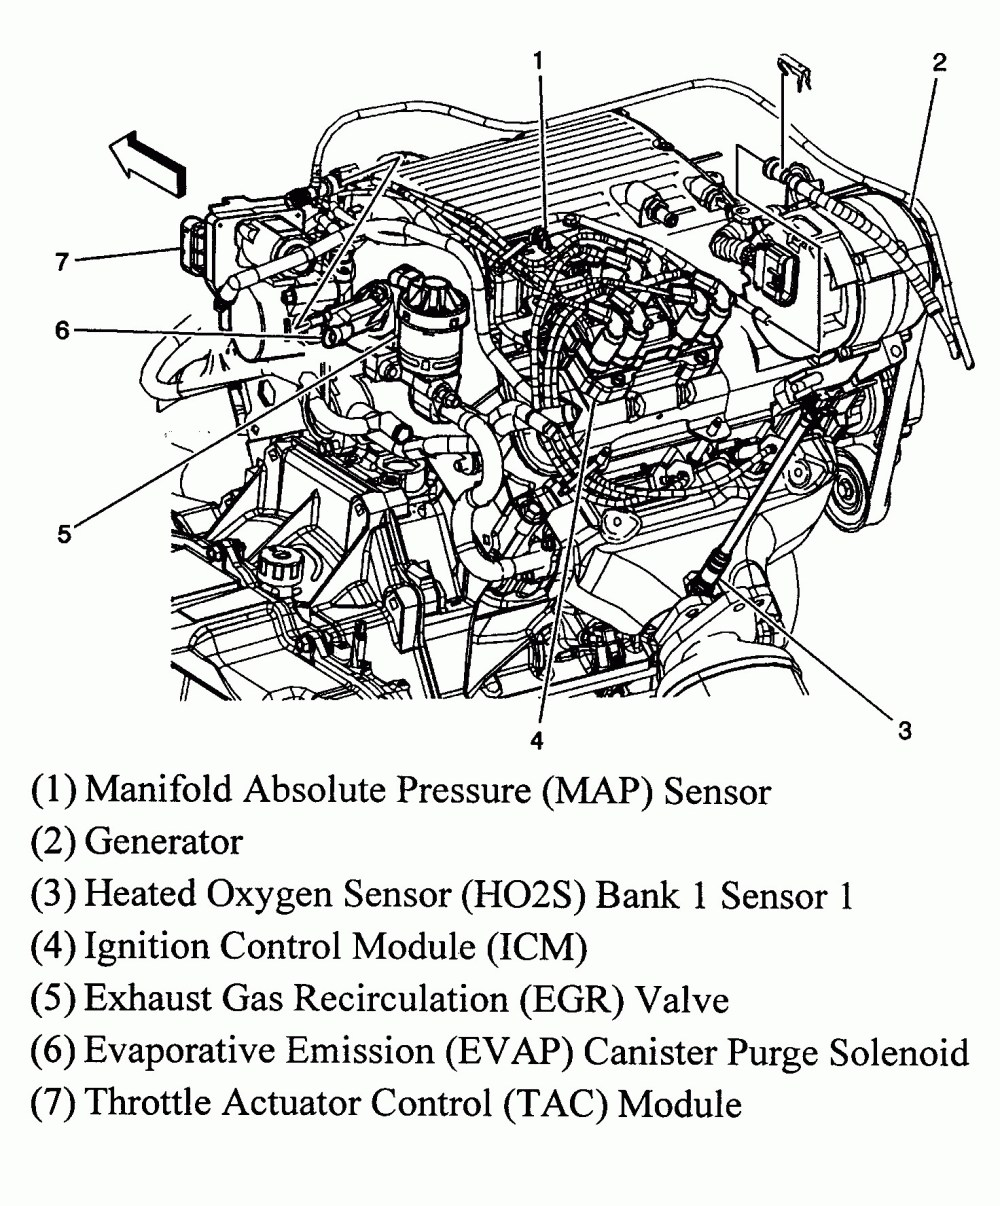 medium resolution of pontiac 3400 engine diagram 2006 pontiac g6 front suspension diagram pontiac g6 diagram for serpentine belt